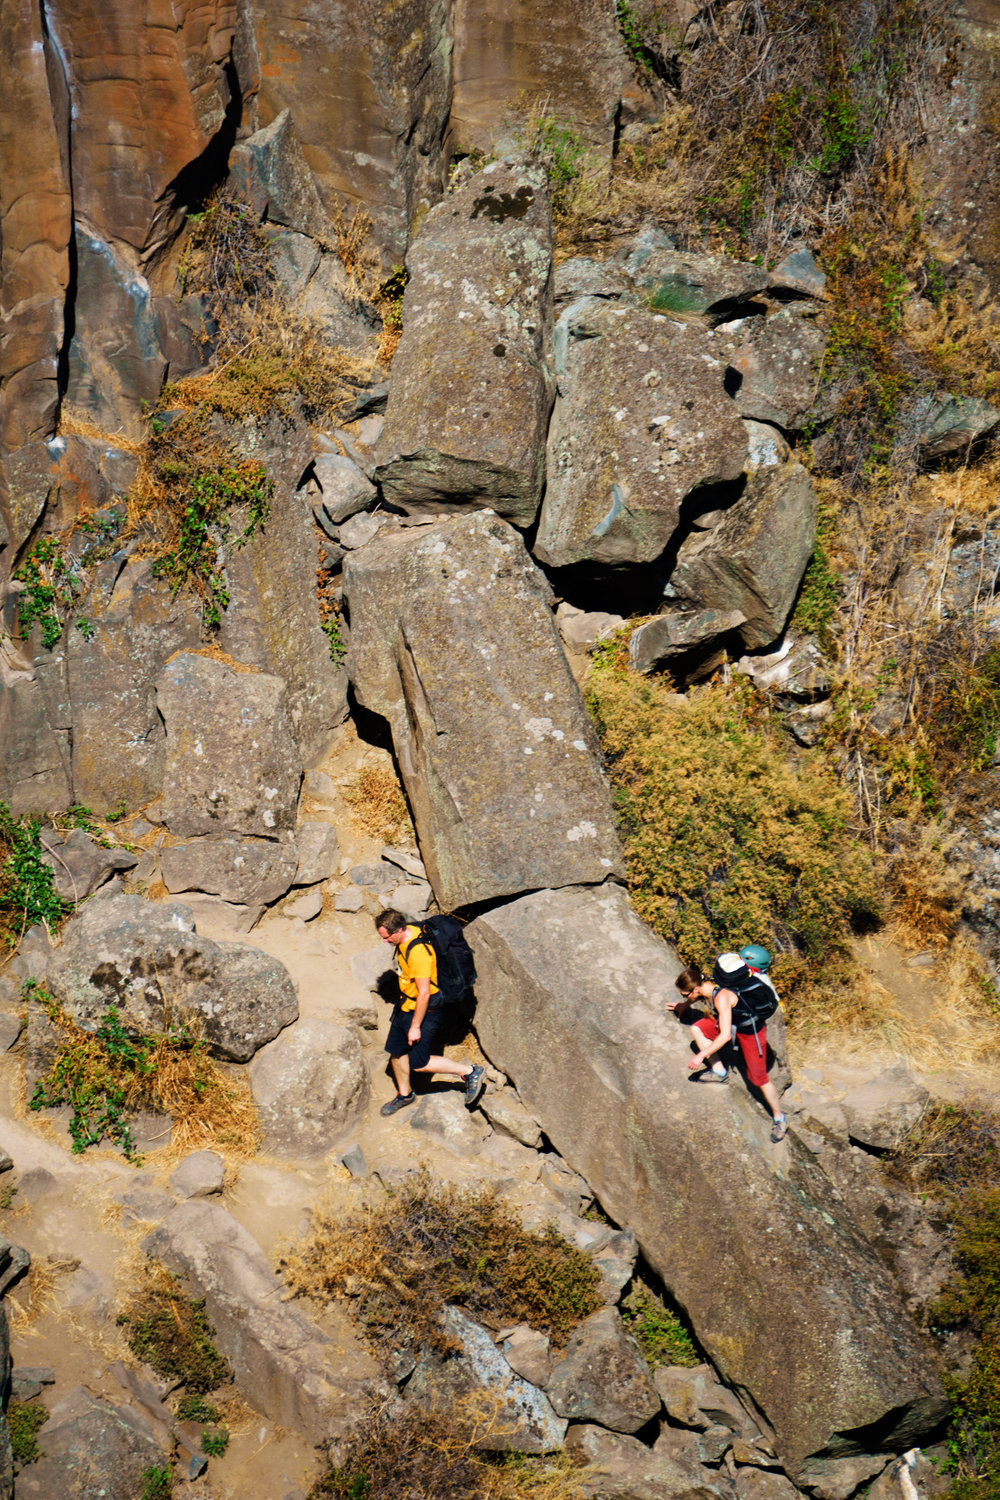 climbers at the base of the west side of the Lower Gorge at Smith Rock State Park